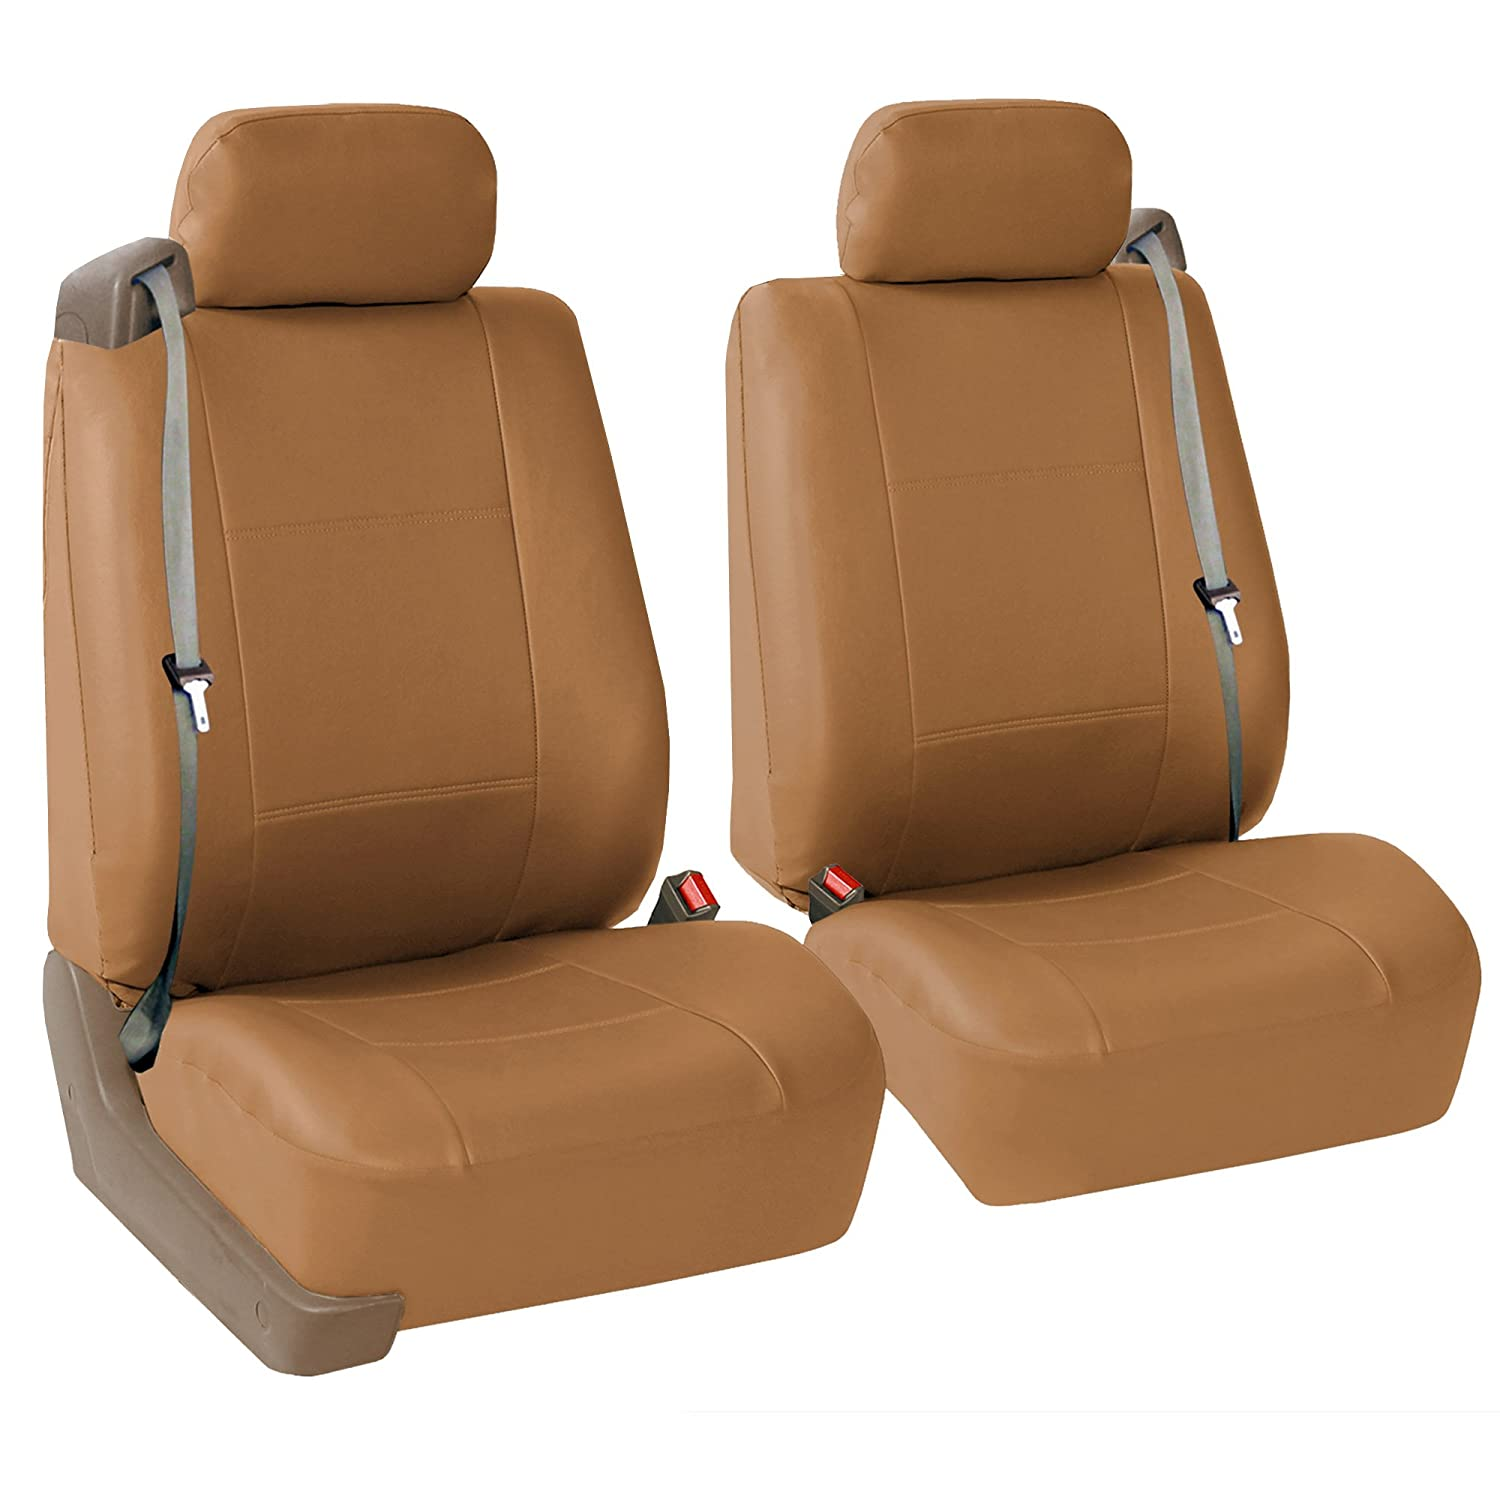 FH-PU002115 Classic PU Leather Car Seat Covers, Airbag compatible and Split Bench, Grey and Black color FH Group 00221115